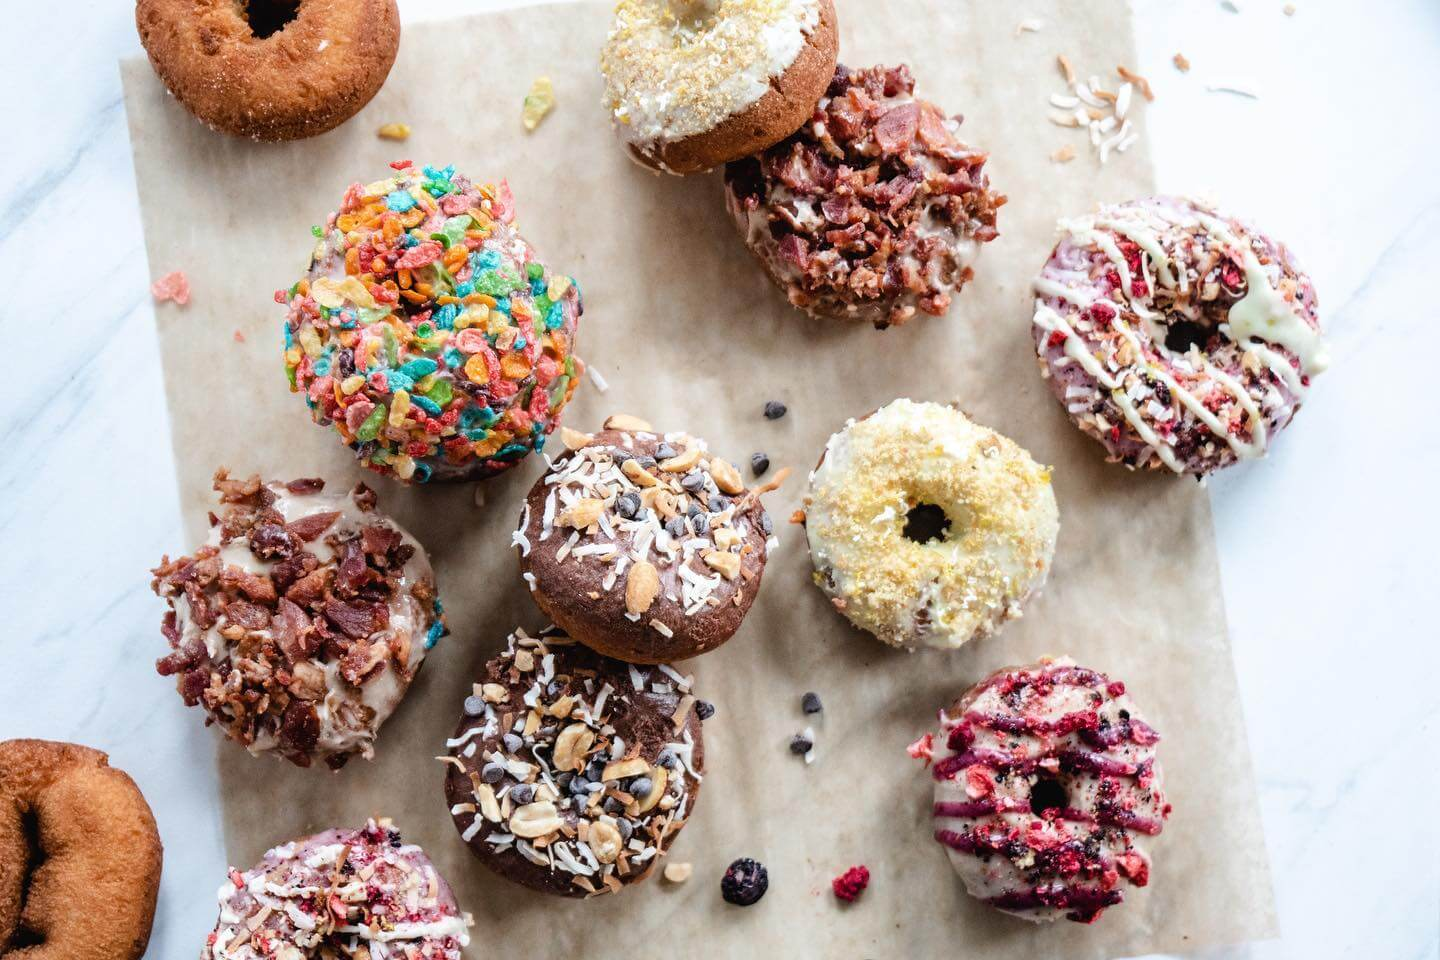 The Best Donut Shops In Metro Detroit